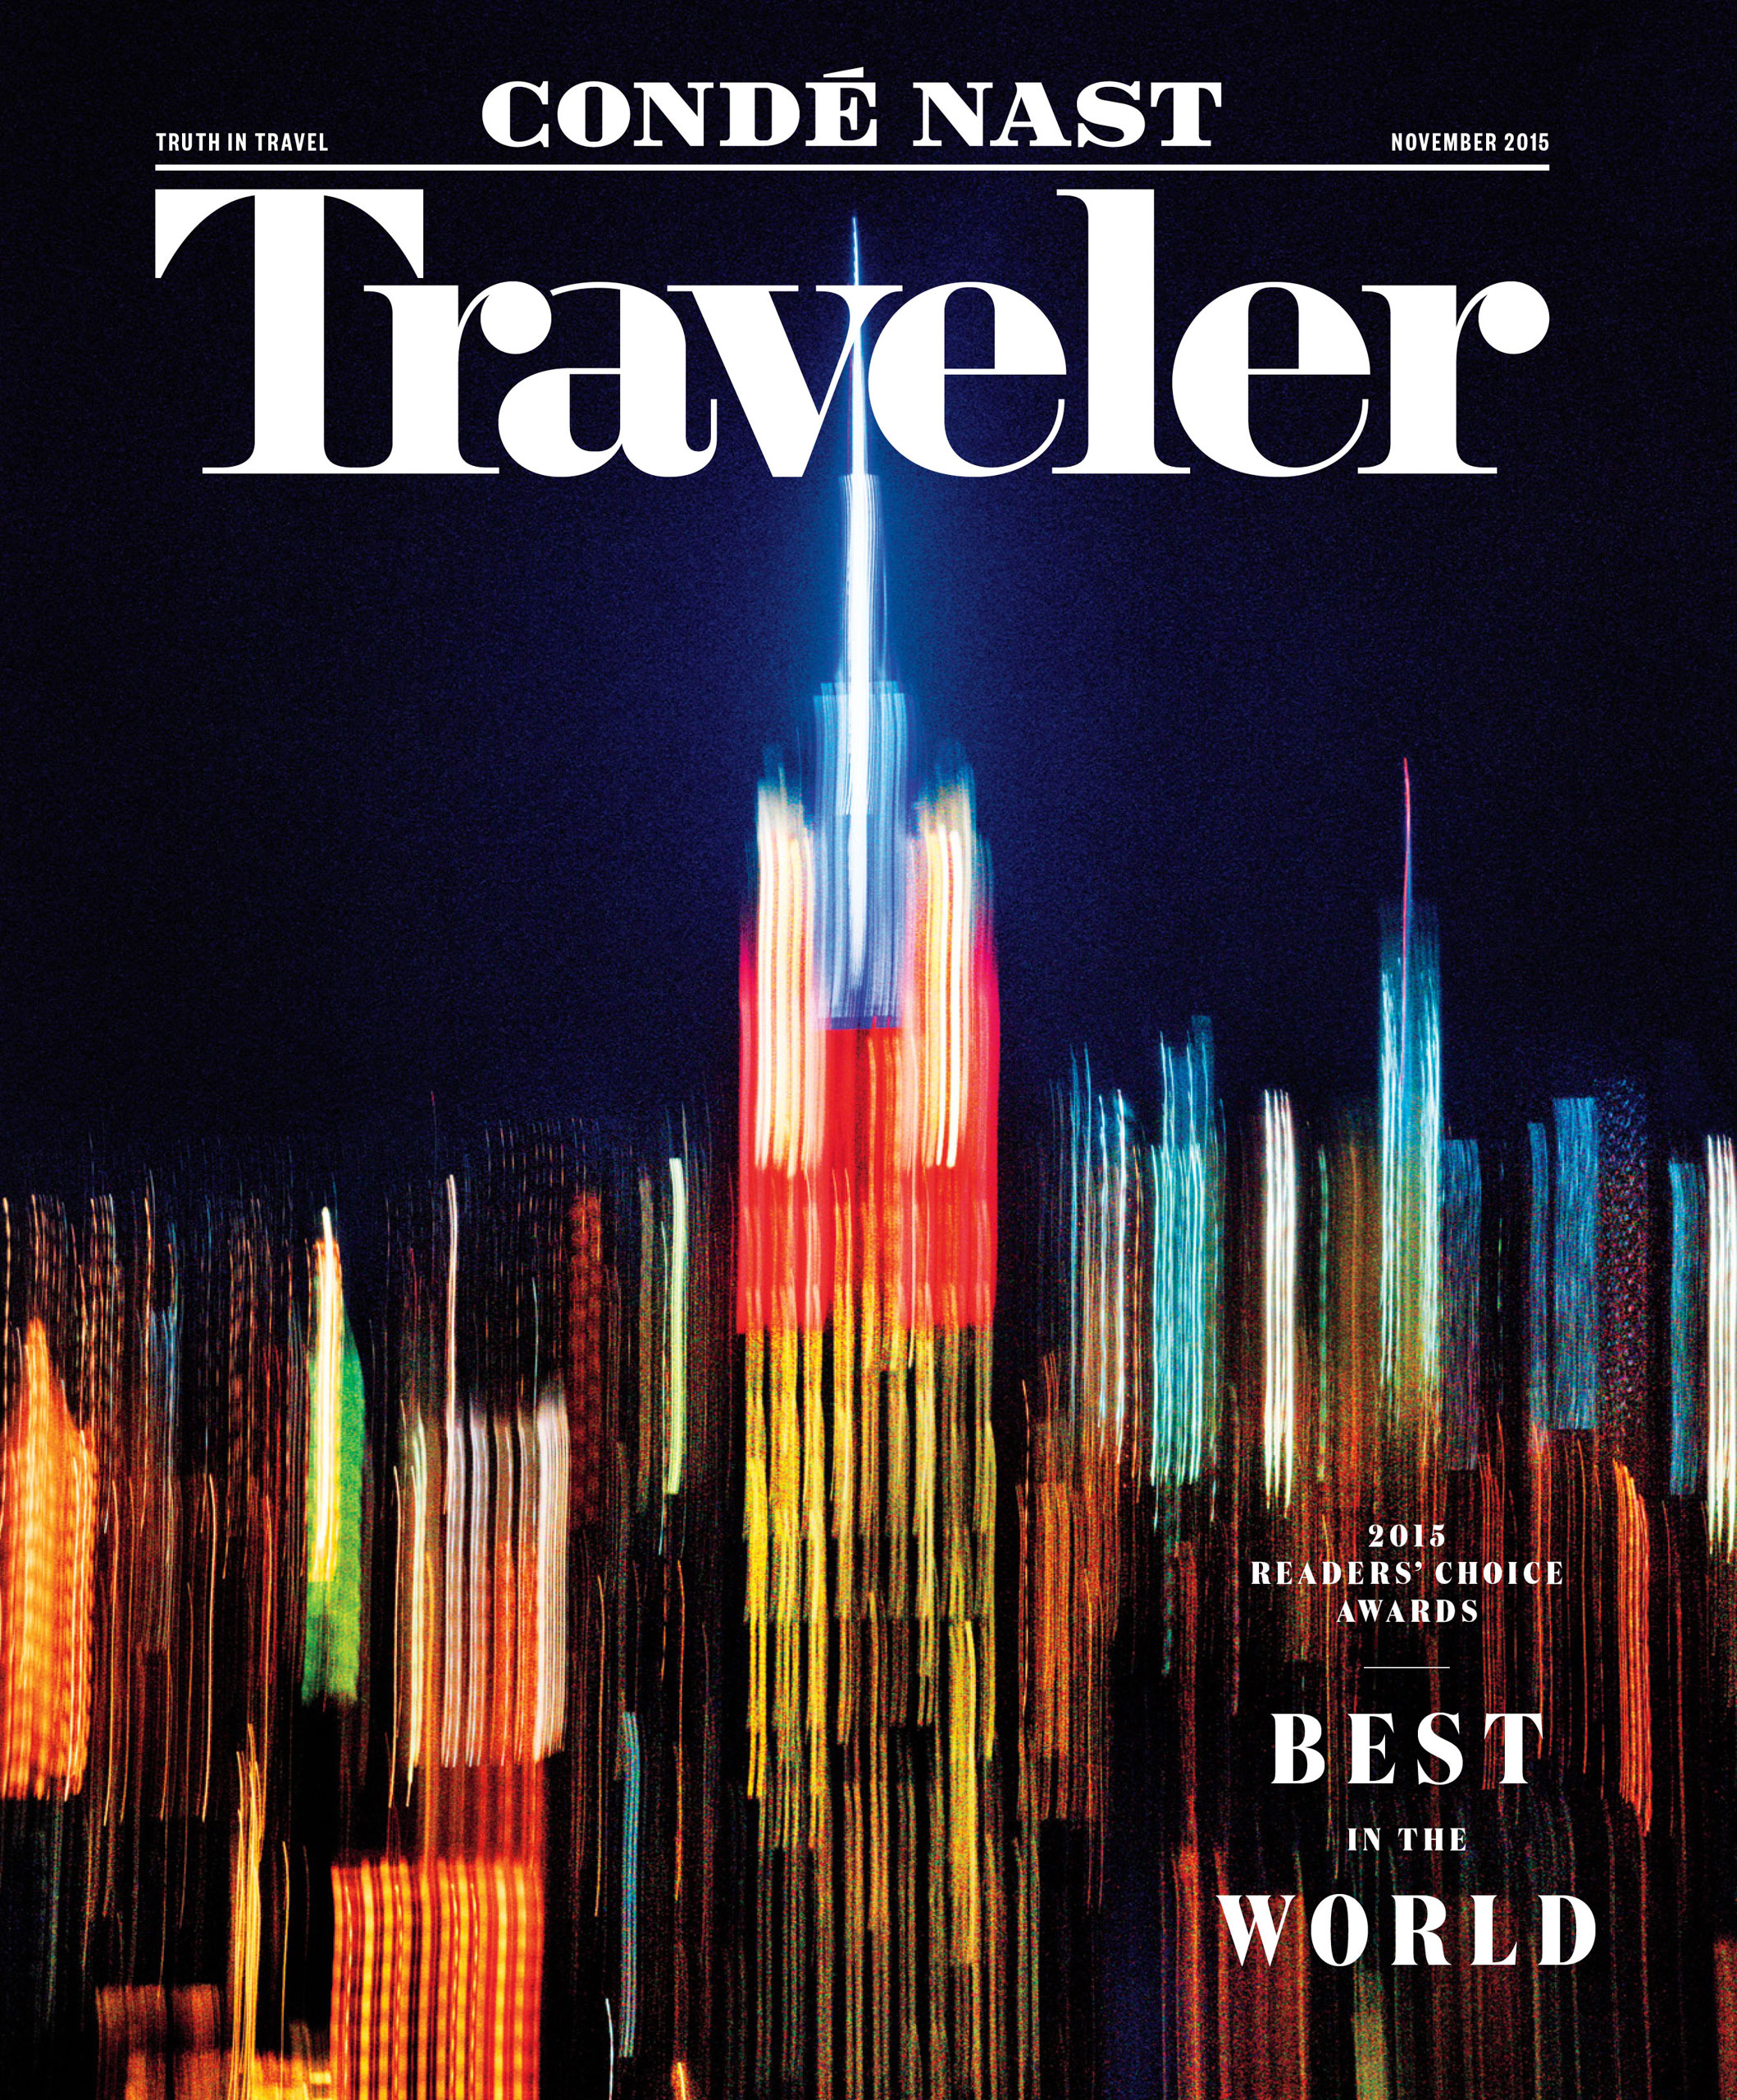 Traveler, November 2015.                               Photograph by Pari Dukovic.                                                              I asked Pari to shoot a love letter to New York City. Like the opening scene of Woody Allen's 1979 film, Manhattan, or Bernice Abbott's seminal images from the 1930s, we wanted to create images that are timeless and romantic, that reflect our nostalgic affection for the city. Pari shot film which is a nice nod to the iconic New York City images from the past.                                                              —Jennifer Miller, Photo Director, Conde Nast Traveler.                                                                                             It is a challenge to make a memorable image of a subject that has been photographed often. Especially when the assignment is the New York City skyline. Imagine seeing the skyline for the first time and how exhilarating it is to experience the energy and vibrancy of the whole city. I wanted to portray this visual impression in a painterly way.                                                              —Pari Dukovik, Photographer